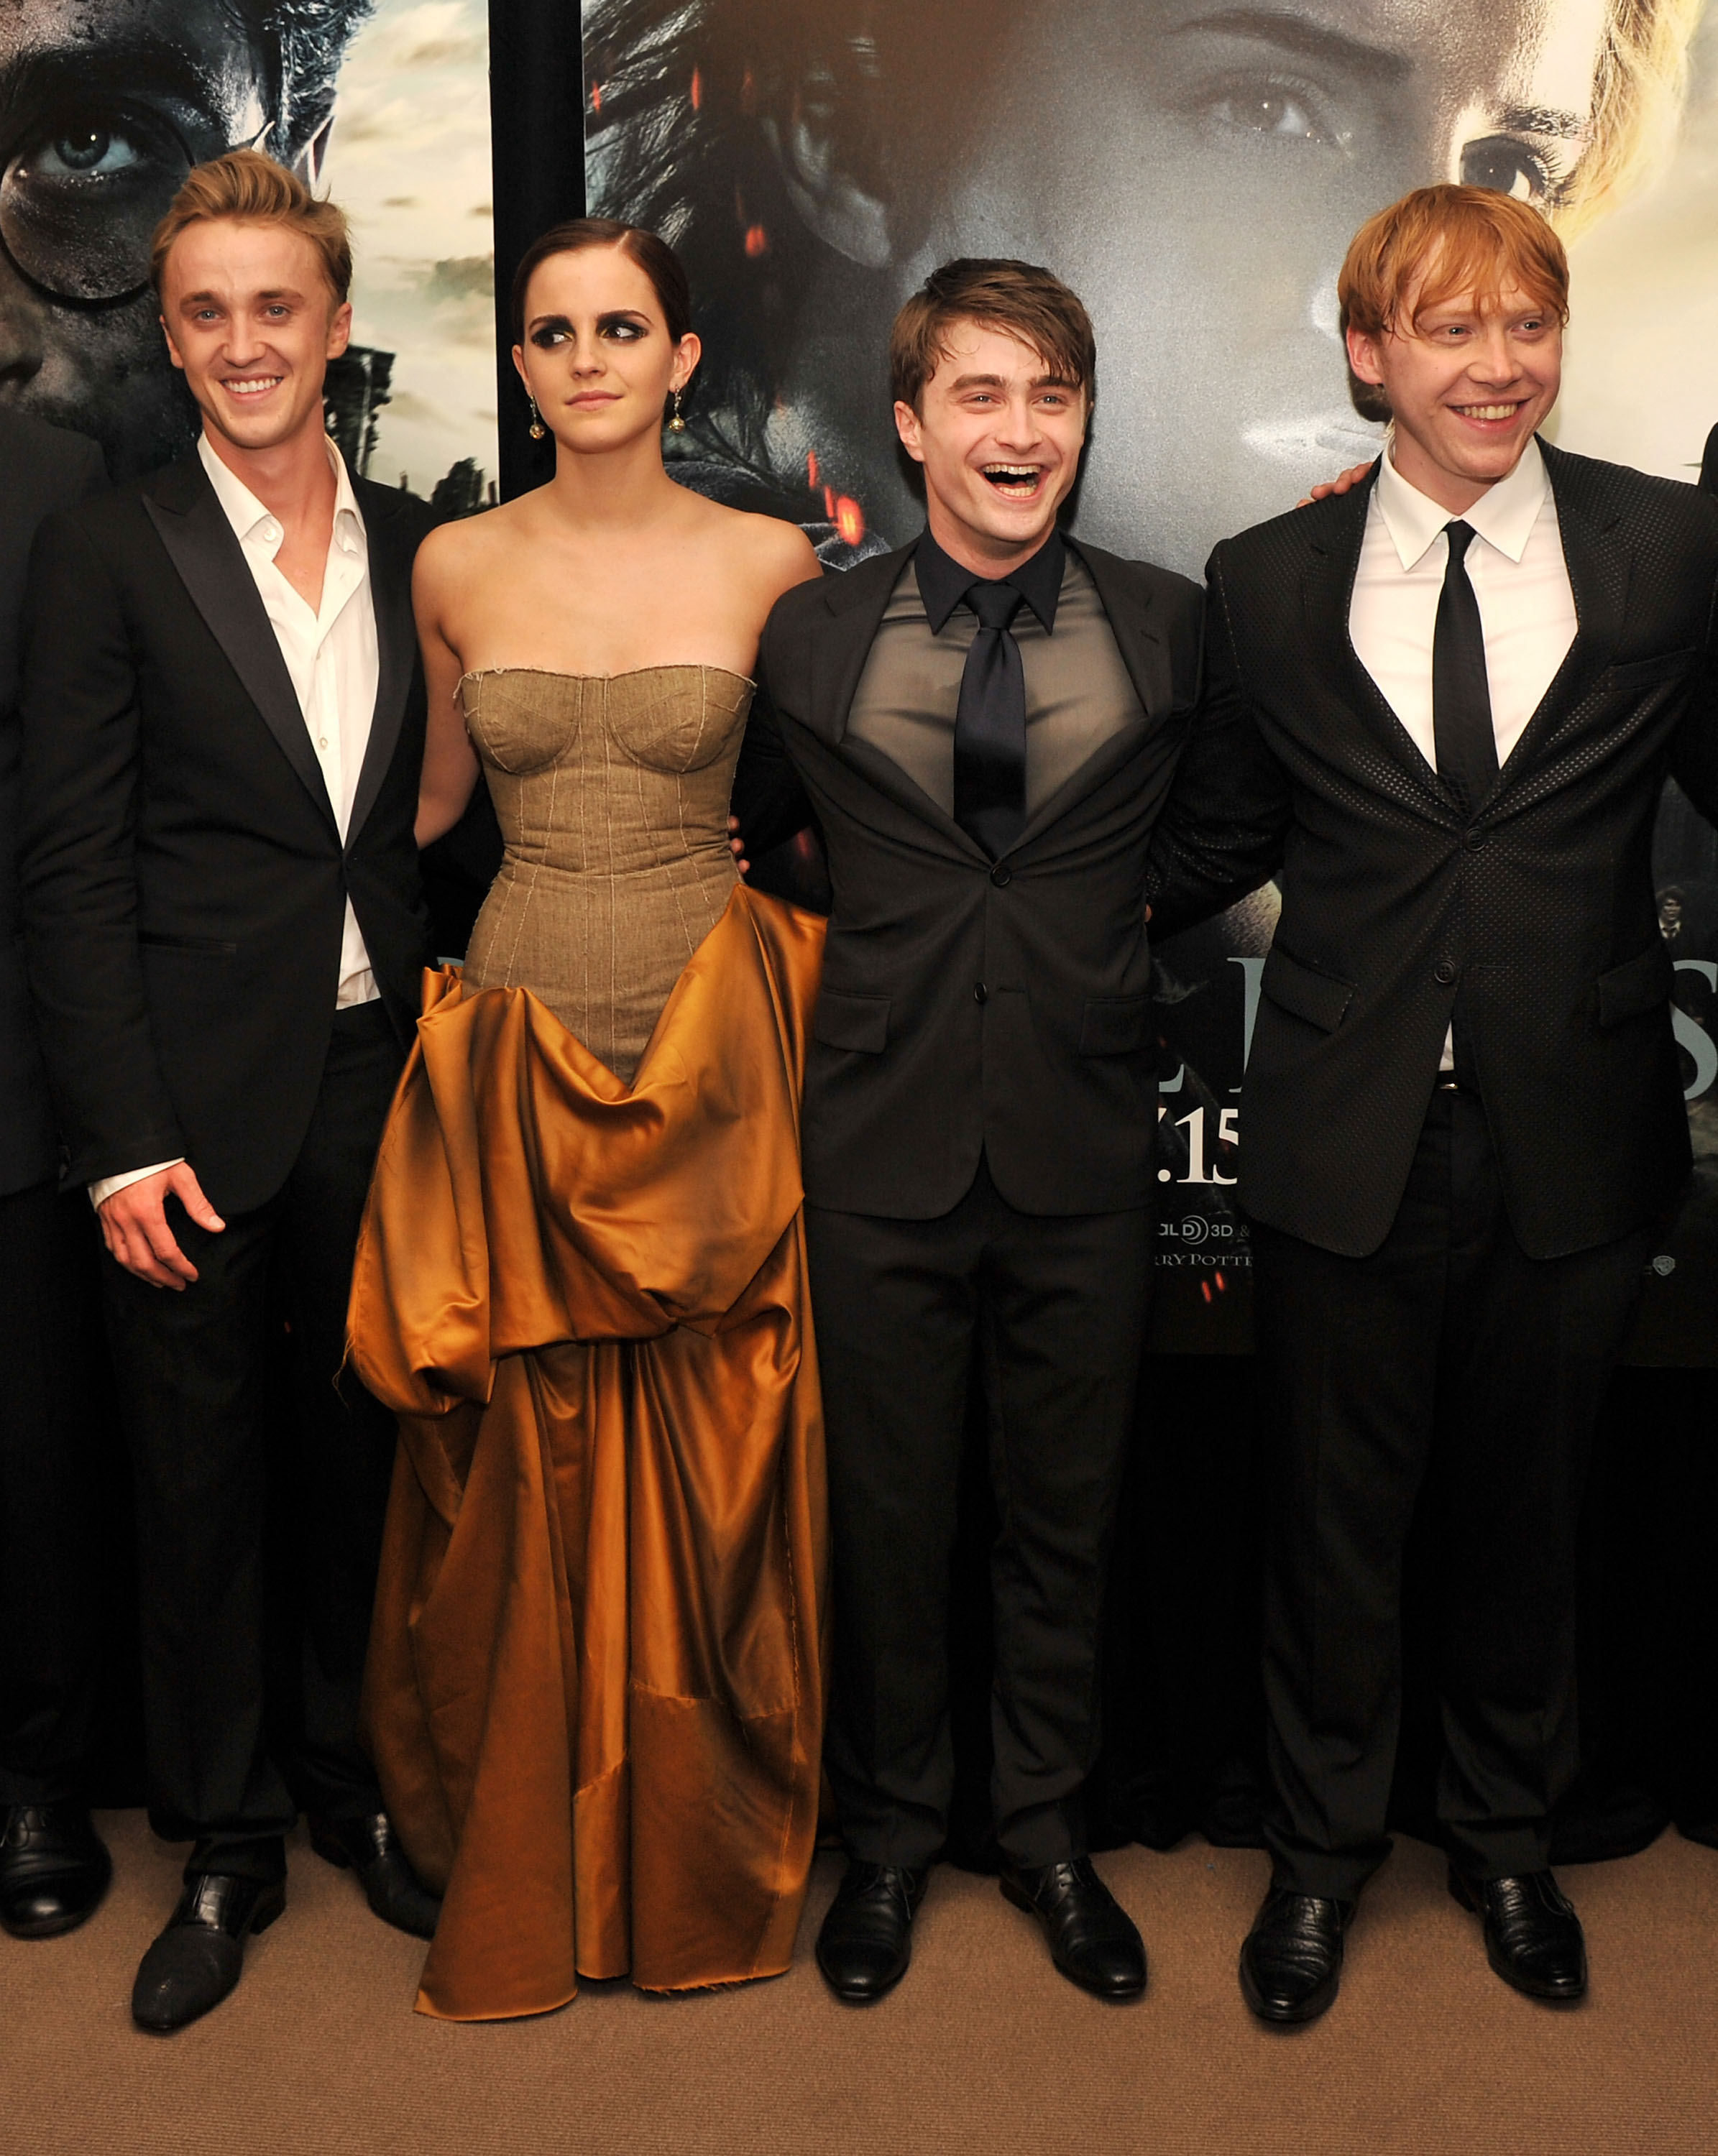 (L-R) Tom Felton, Emma Watson, Daniel Radcliffe and Rupert Grint attend the New York premiere of 'Harry Potter And The Deathly Hallows: Part 2' at Avery Fisher Hall, Lincoln Center on July 11, 2011 in New York City.